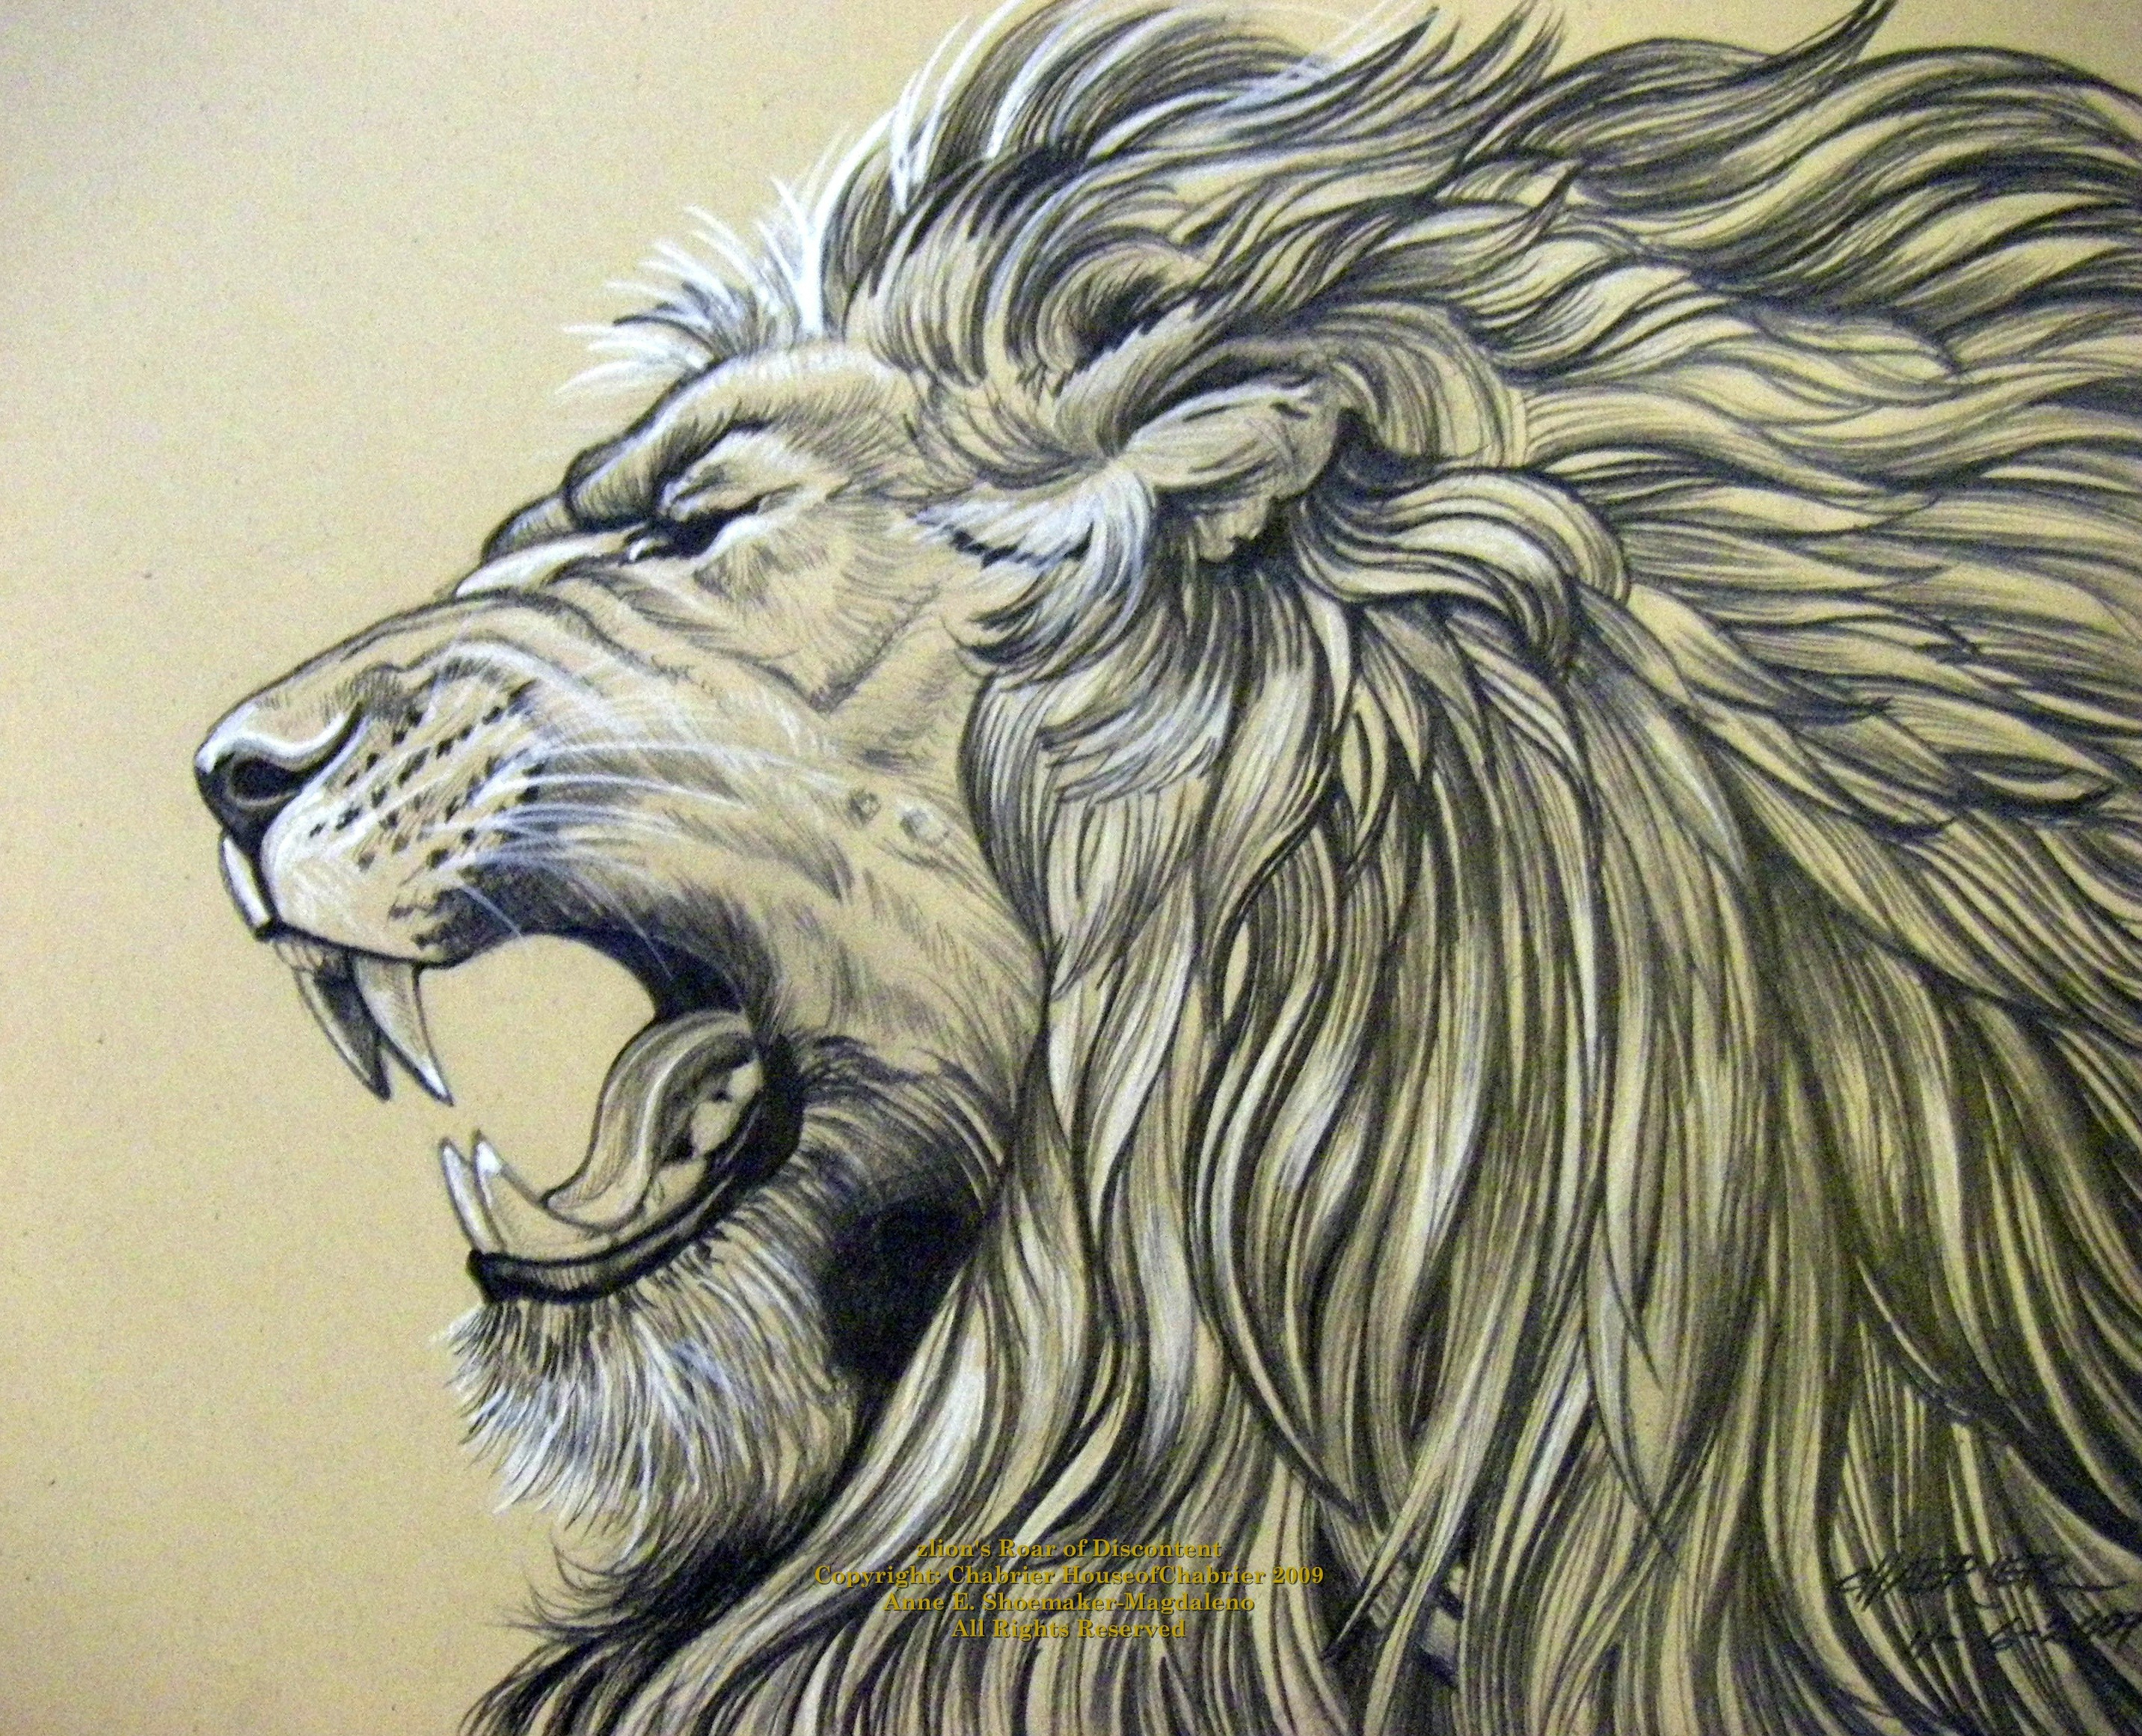 2864x2321 Realistic Drawings Of Lions Roaring Pencil Drawings Of Jesus